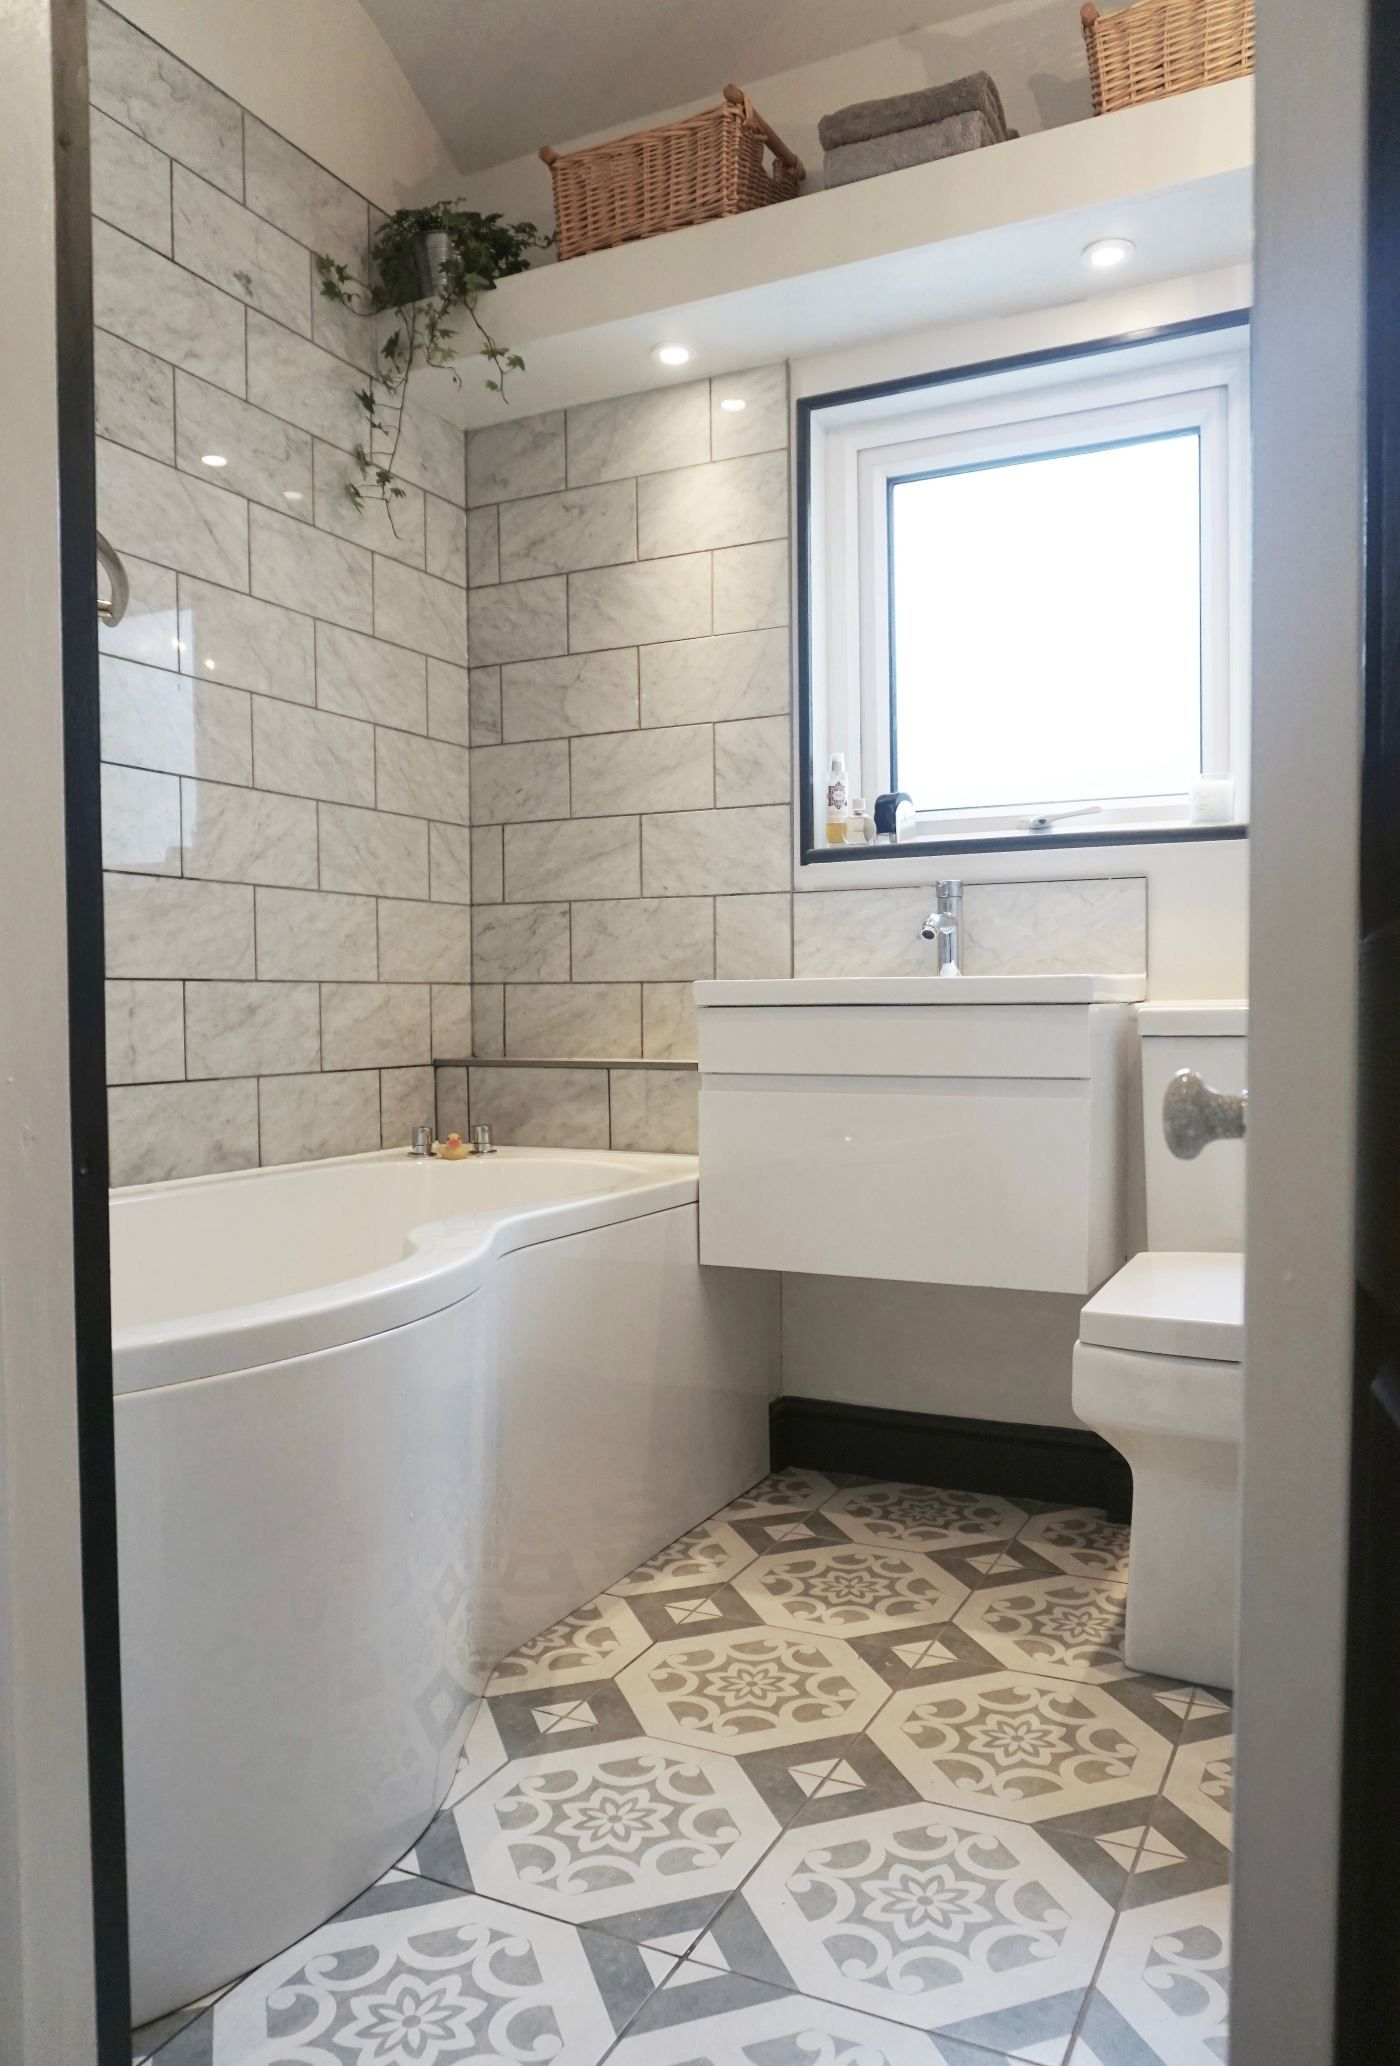 How To: Design & Style In A Small Bathroom - MAKE IT ...